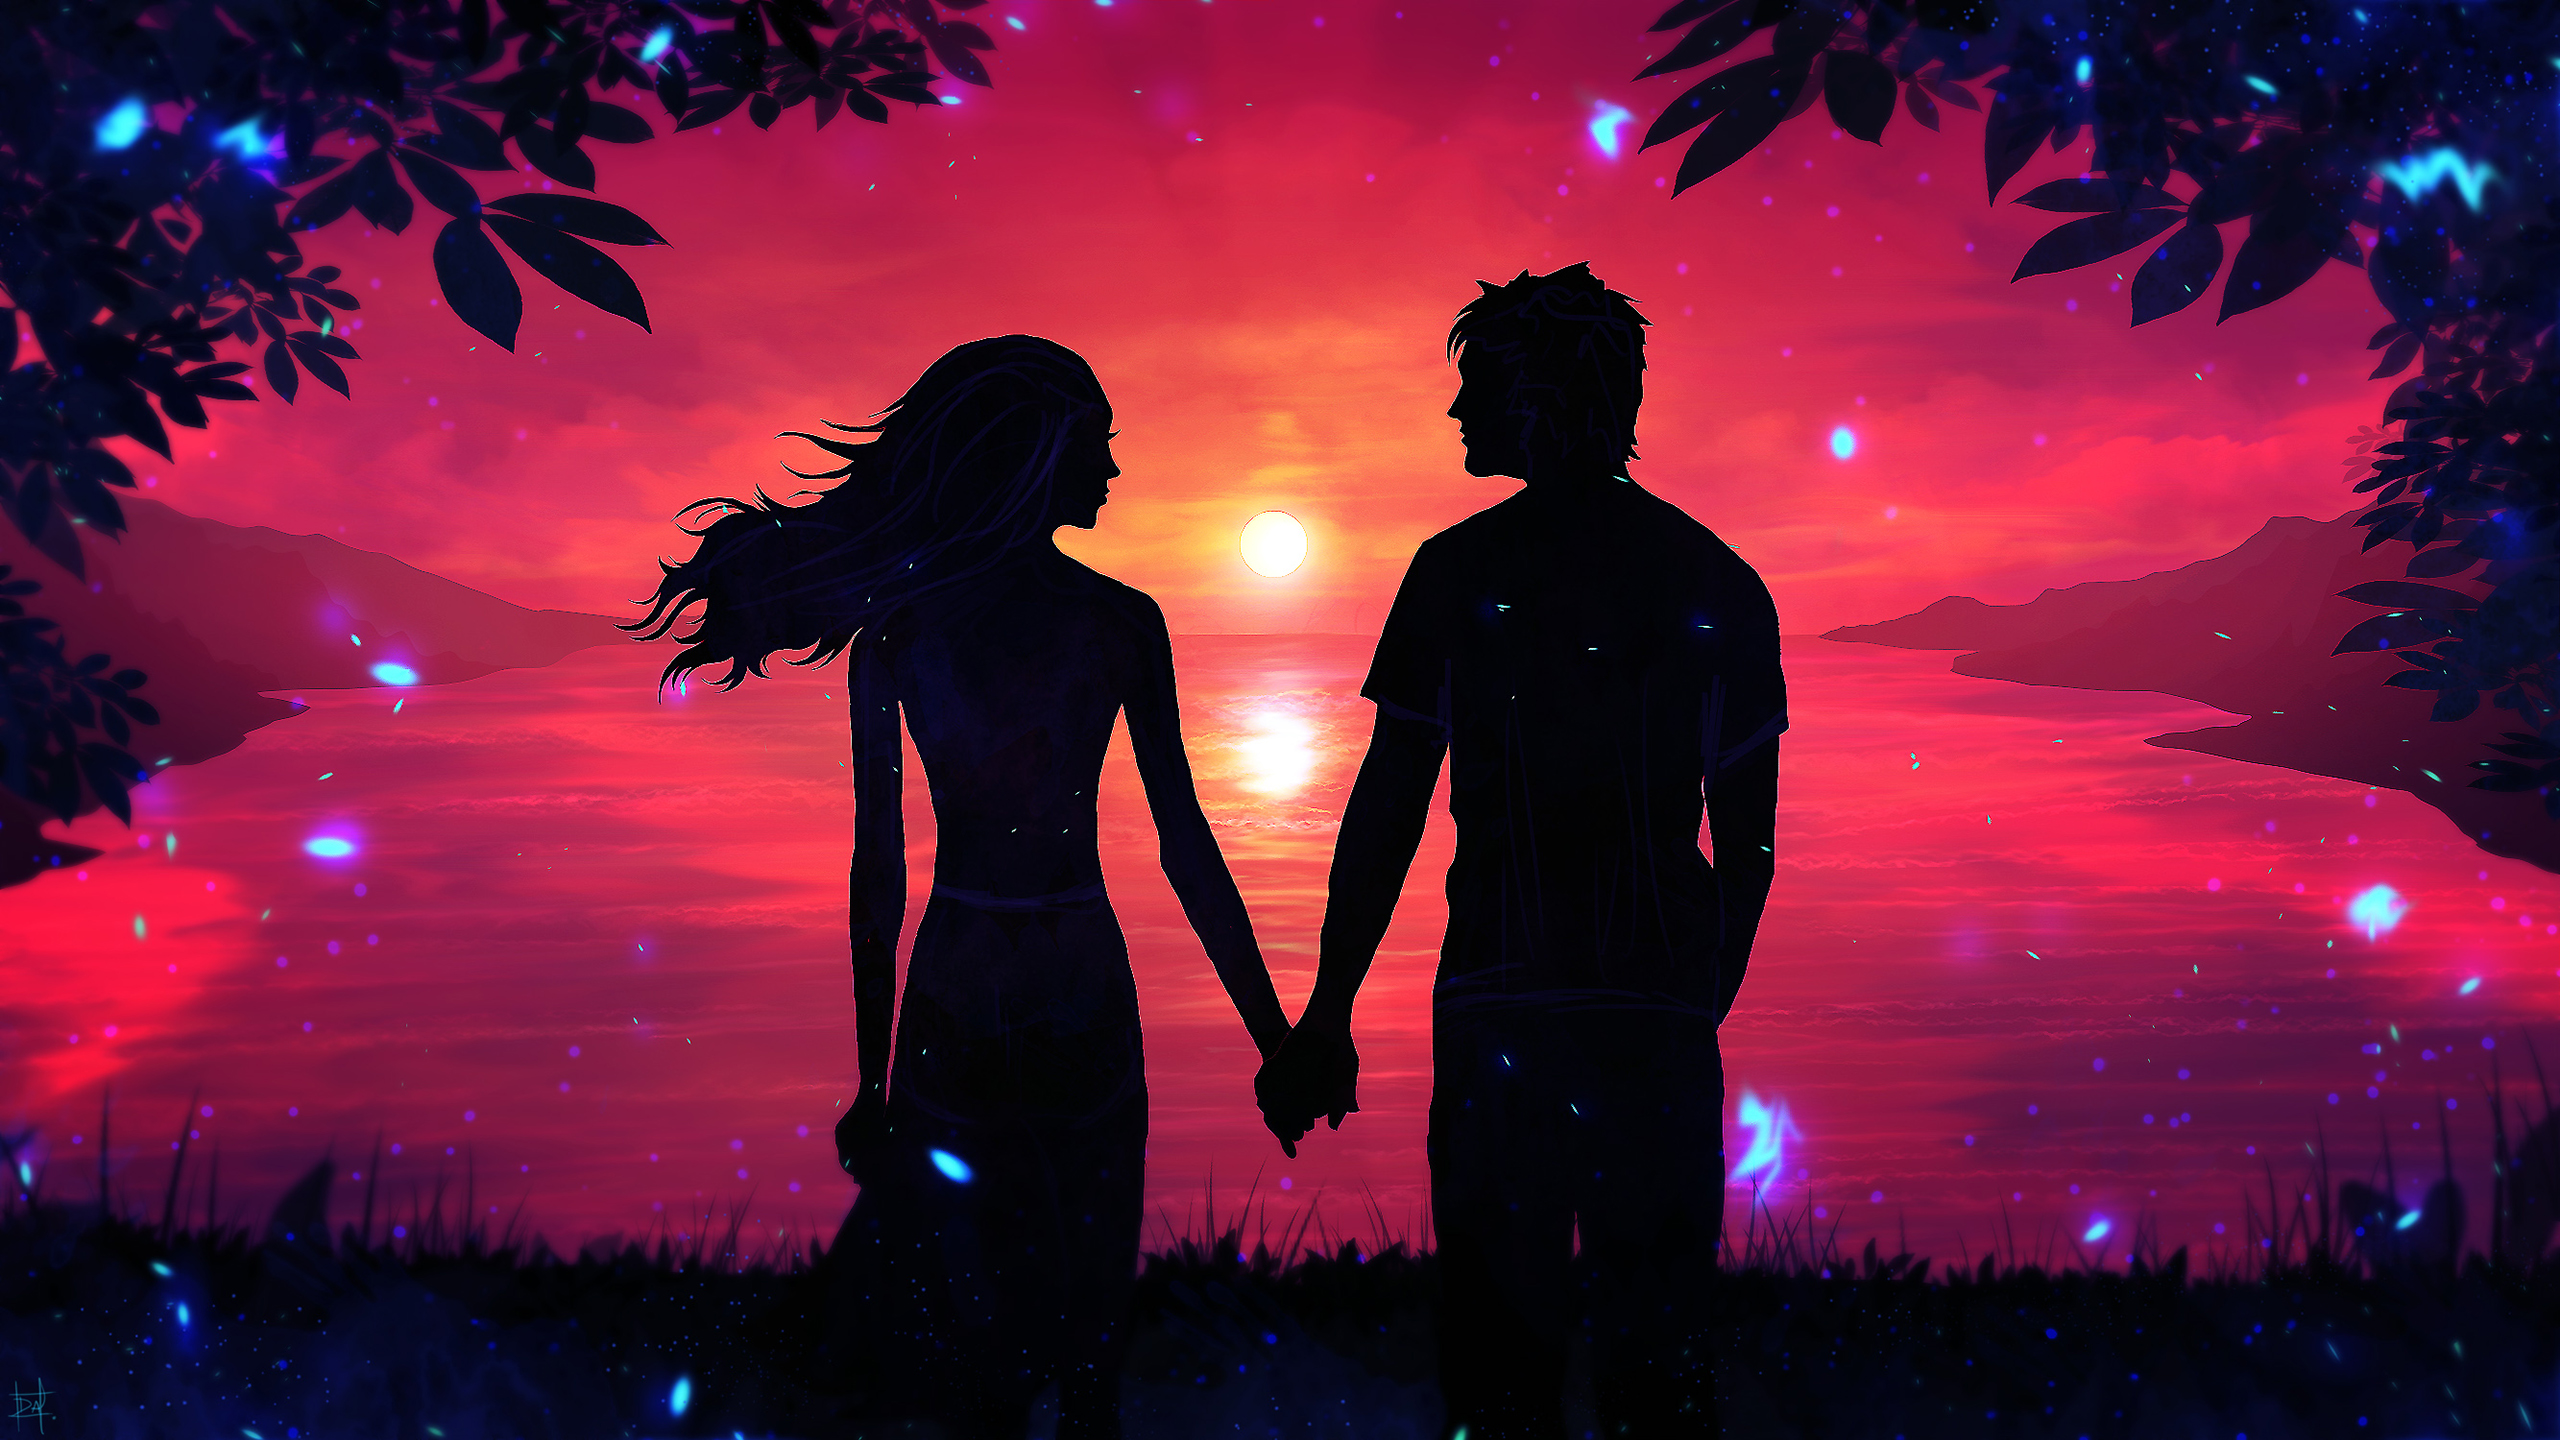 Beautiful Cute Couple Hd Wallpapers Romantic Couple Sunset Silhouette Wallpapers Hd